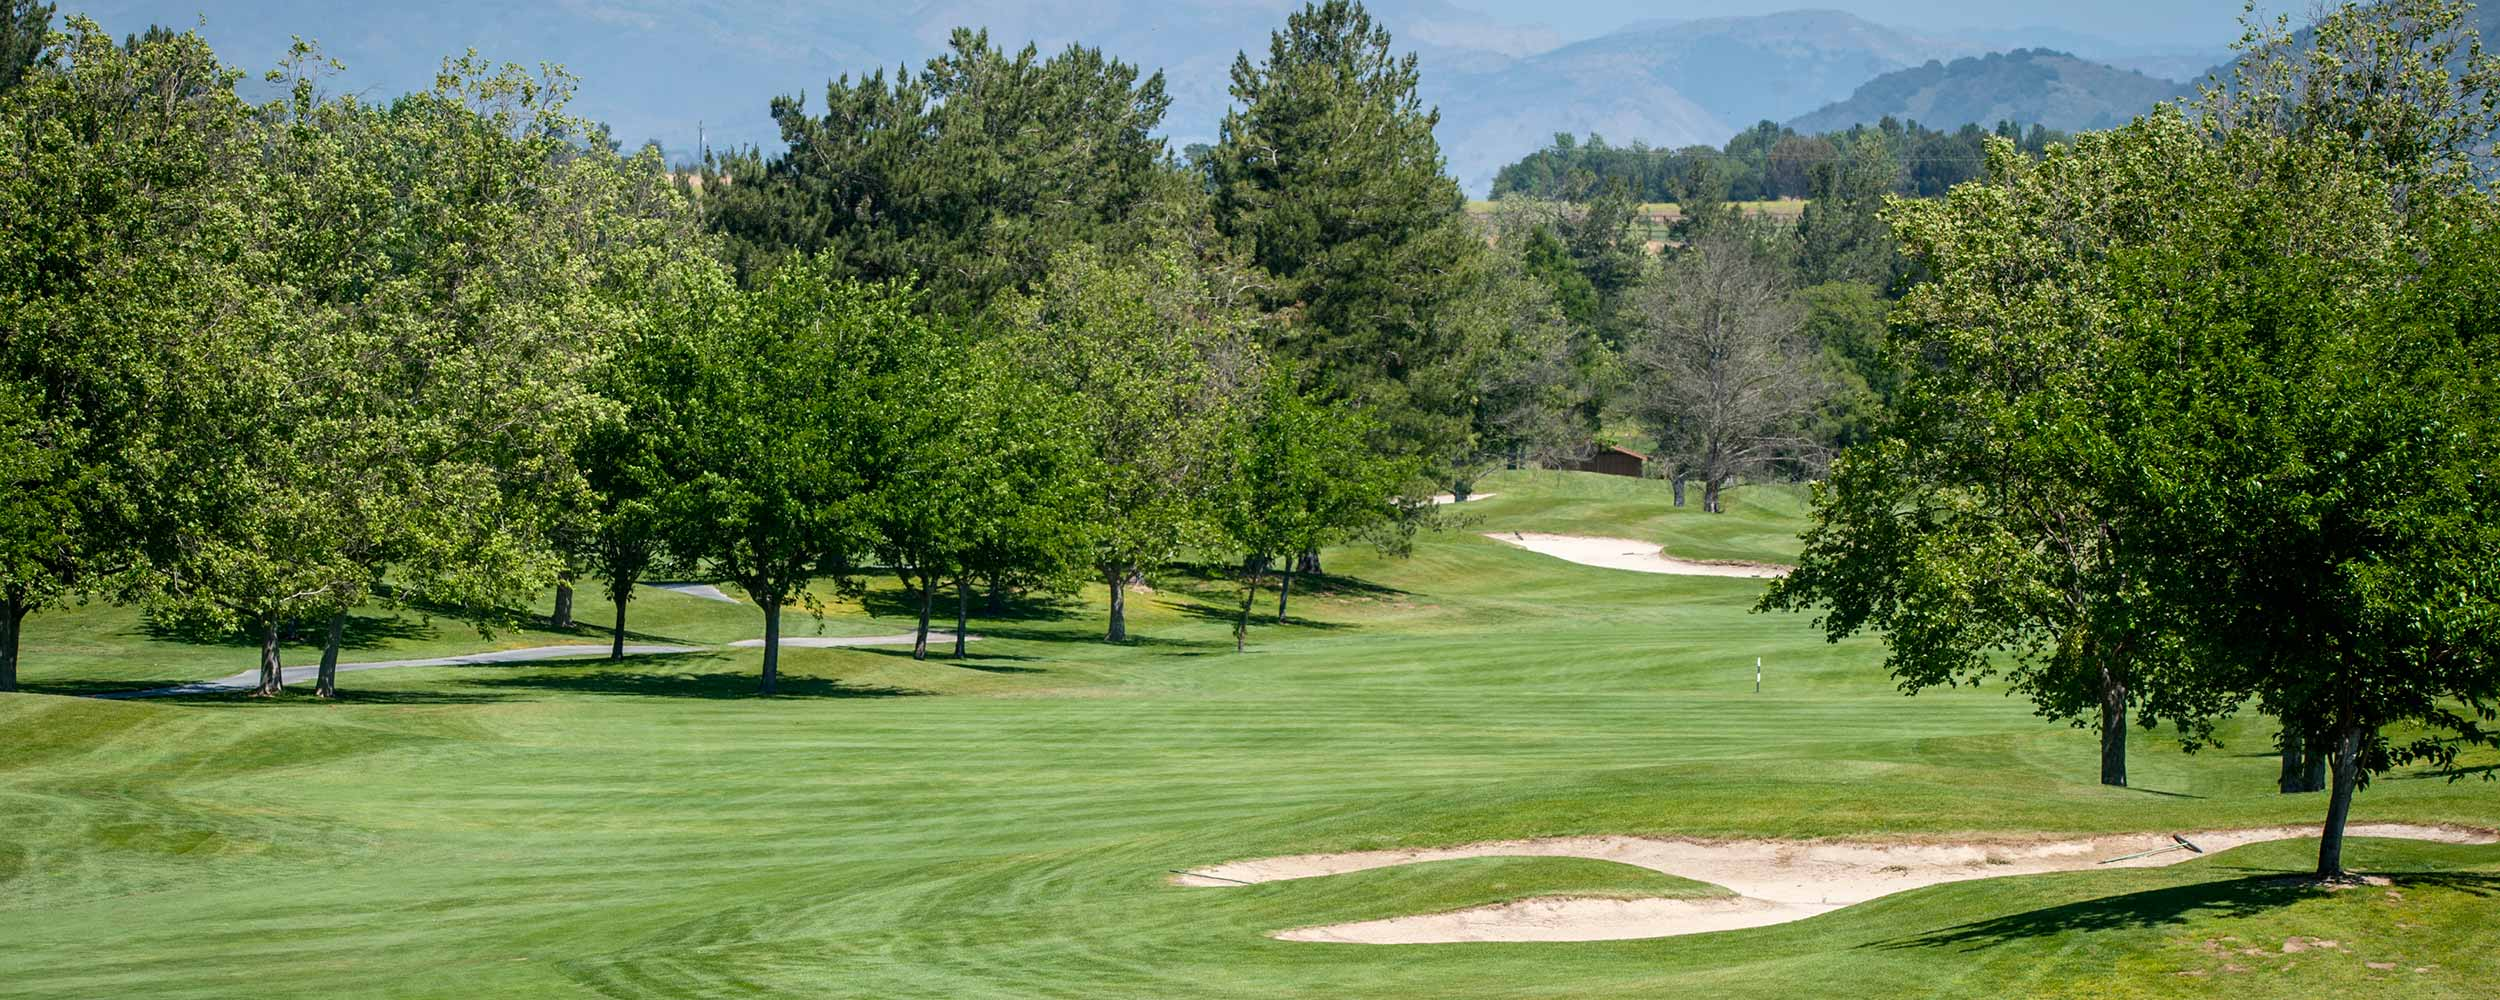 Alisal Ranch Golf Course - Alisal Resort in Solvang California